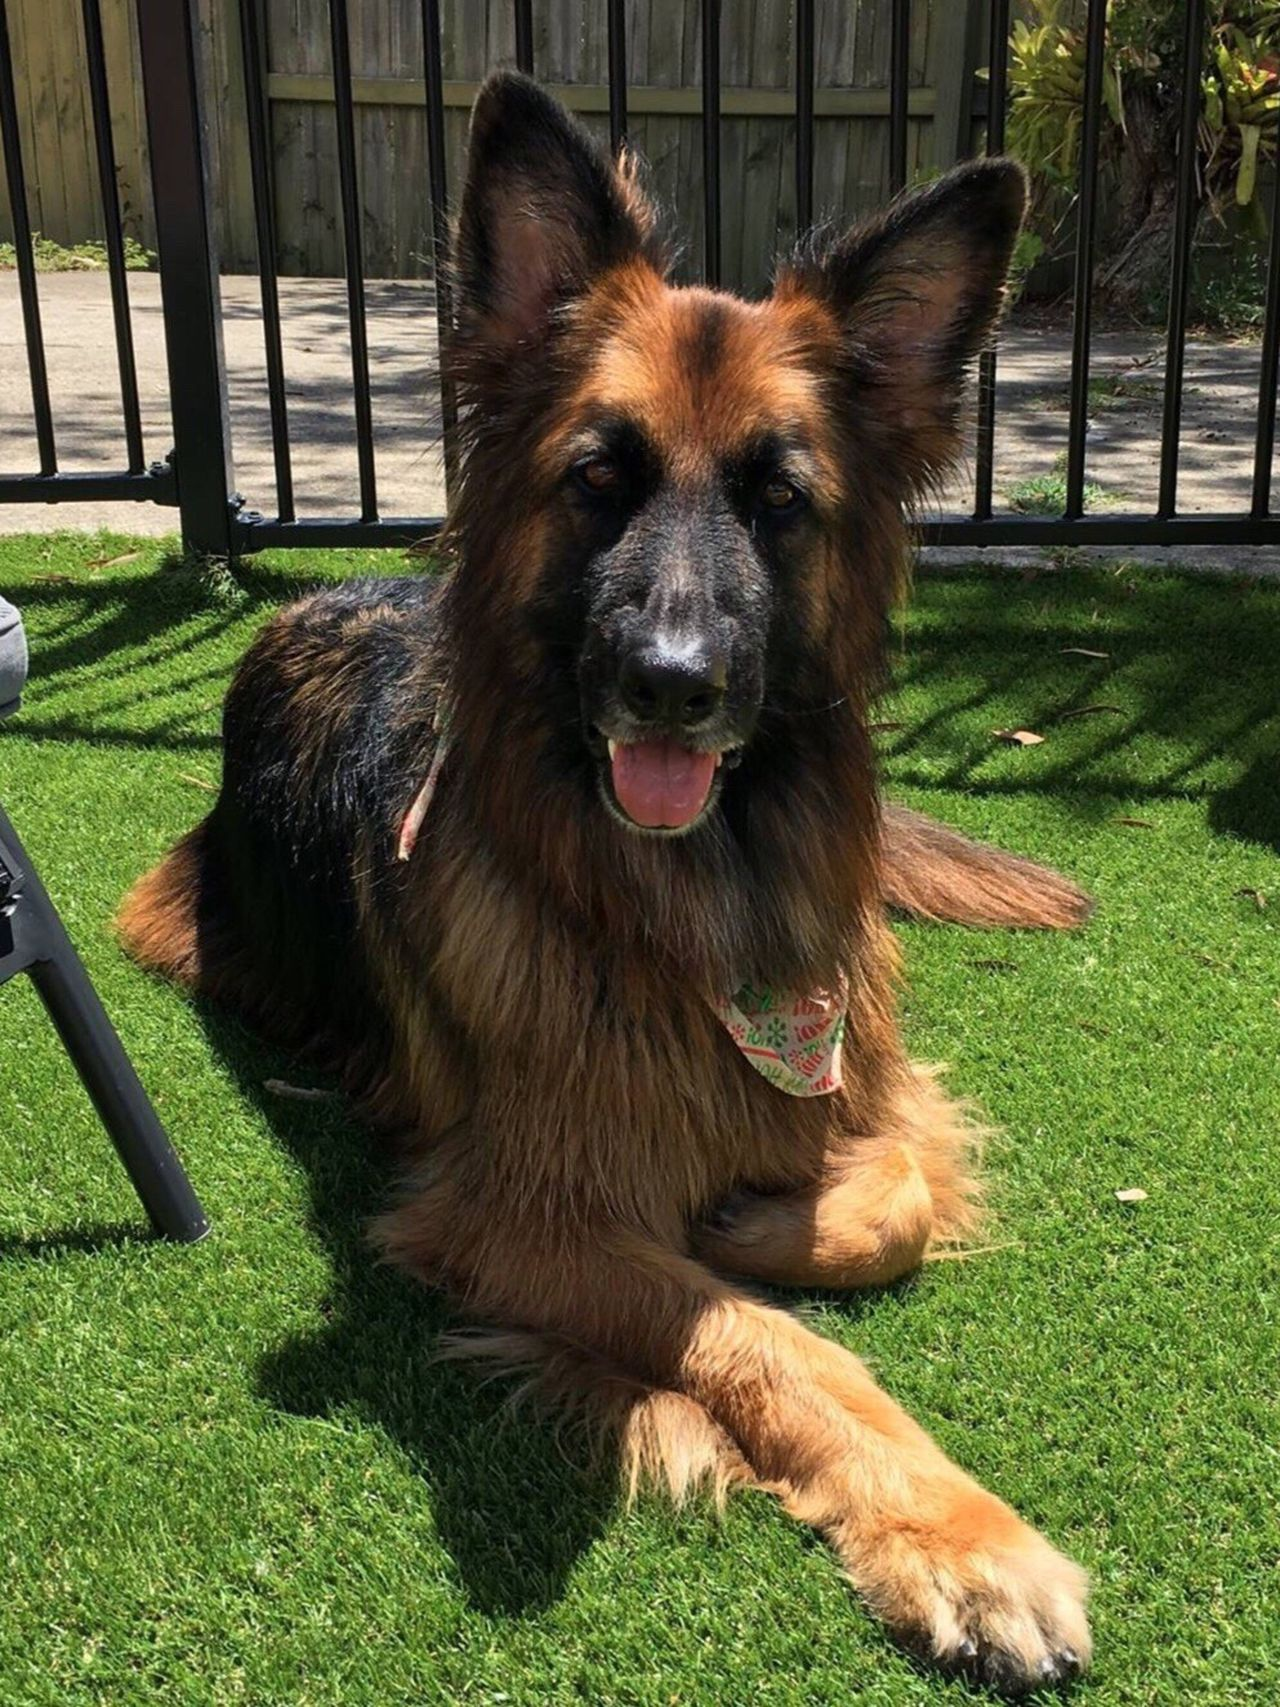 Domestic Animals Mammal Pets Animal Themes Grass One Animal Dog Looking At Camera Brown Portrait German Shepherd Green Color No People Outdoors Close-up Day